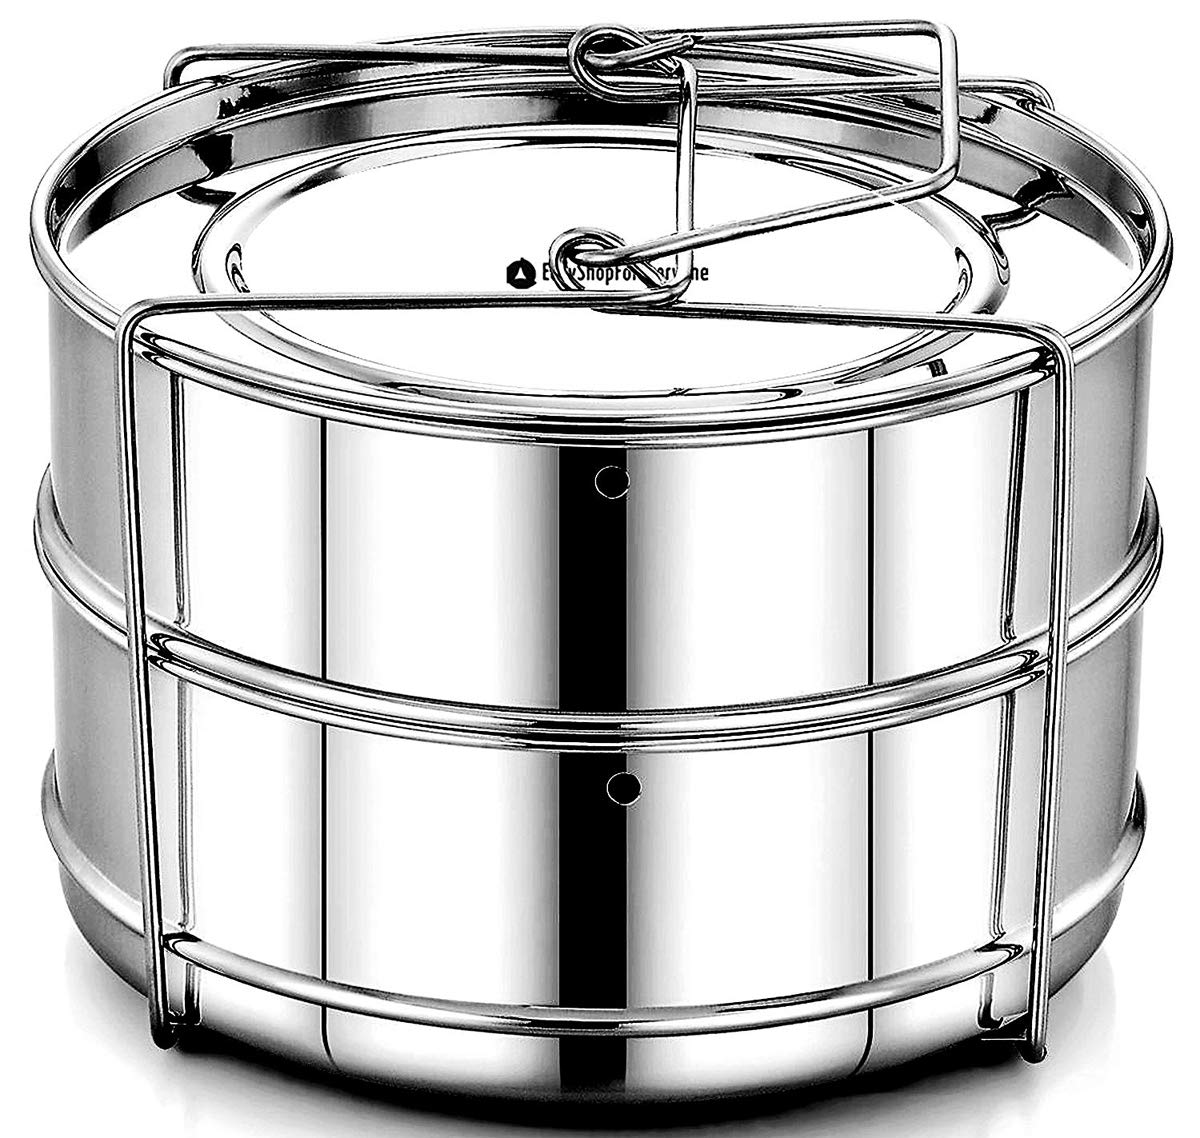 EasyShopForEveryone Stackable Stainless Steel Steamer Insert Pans - Vent Holes to Equalize Steam - Cook Vegetables, Meat, Fish, Rice and more - Fits 5, 6, 8 Quart Instant Pot Pressure Cooker PCIP-2T-KL